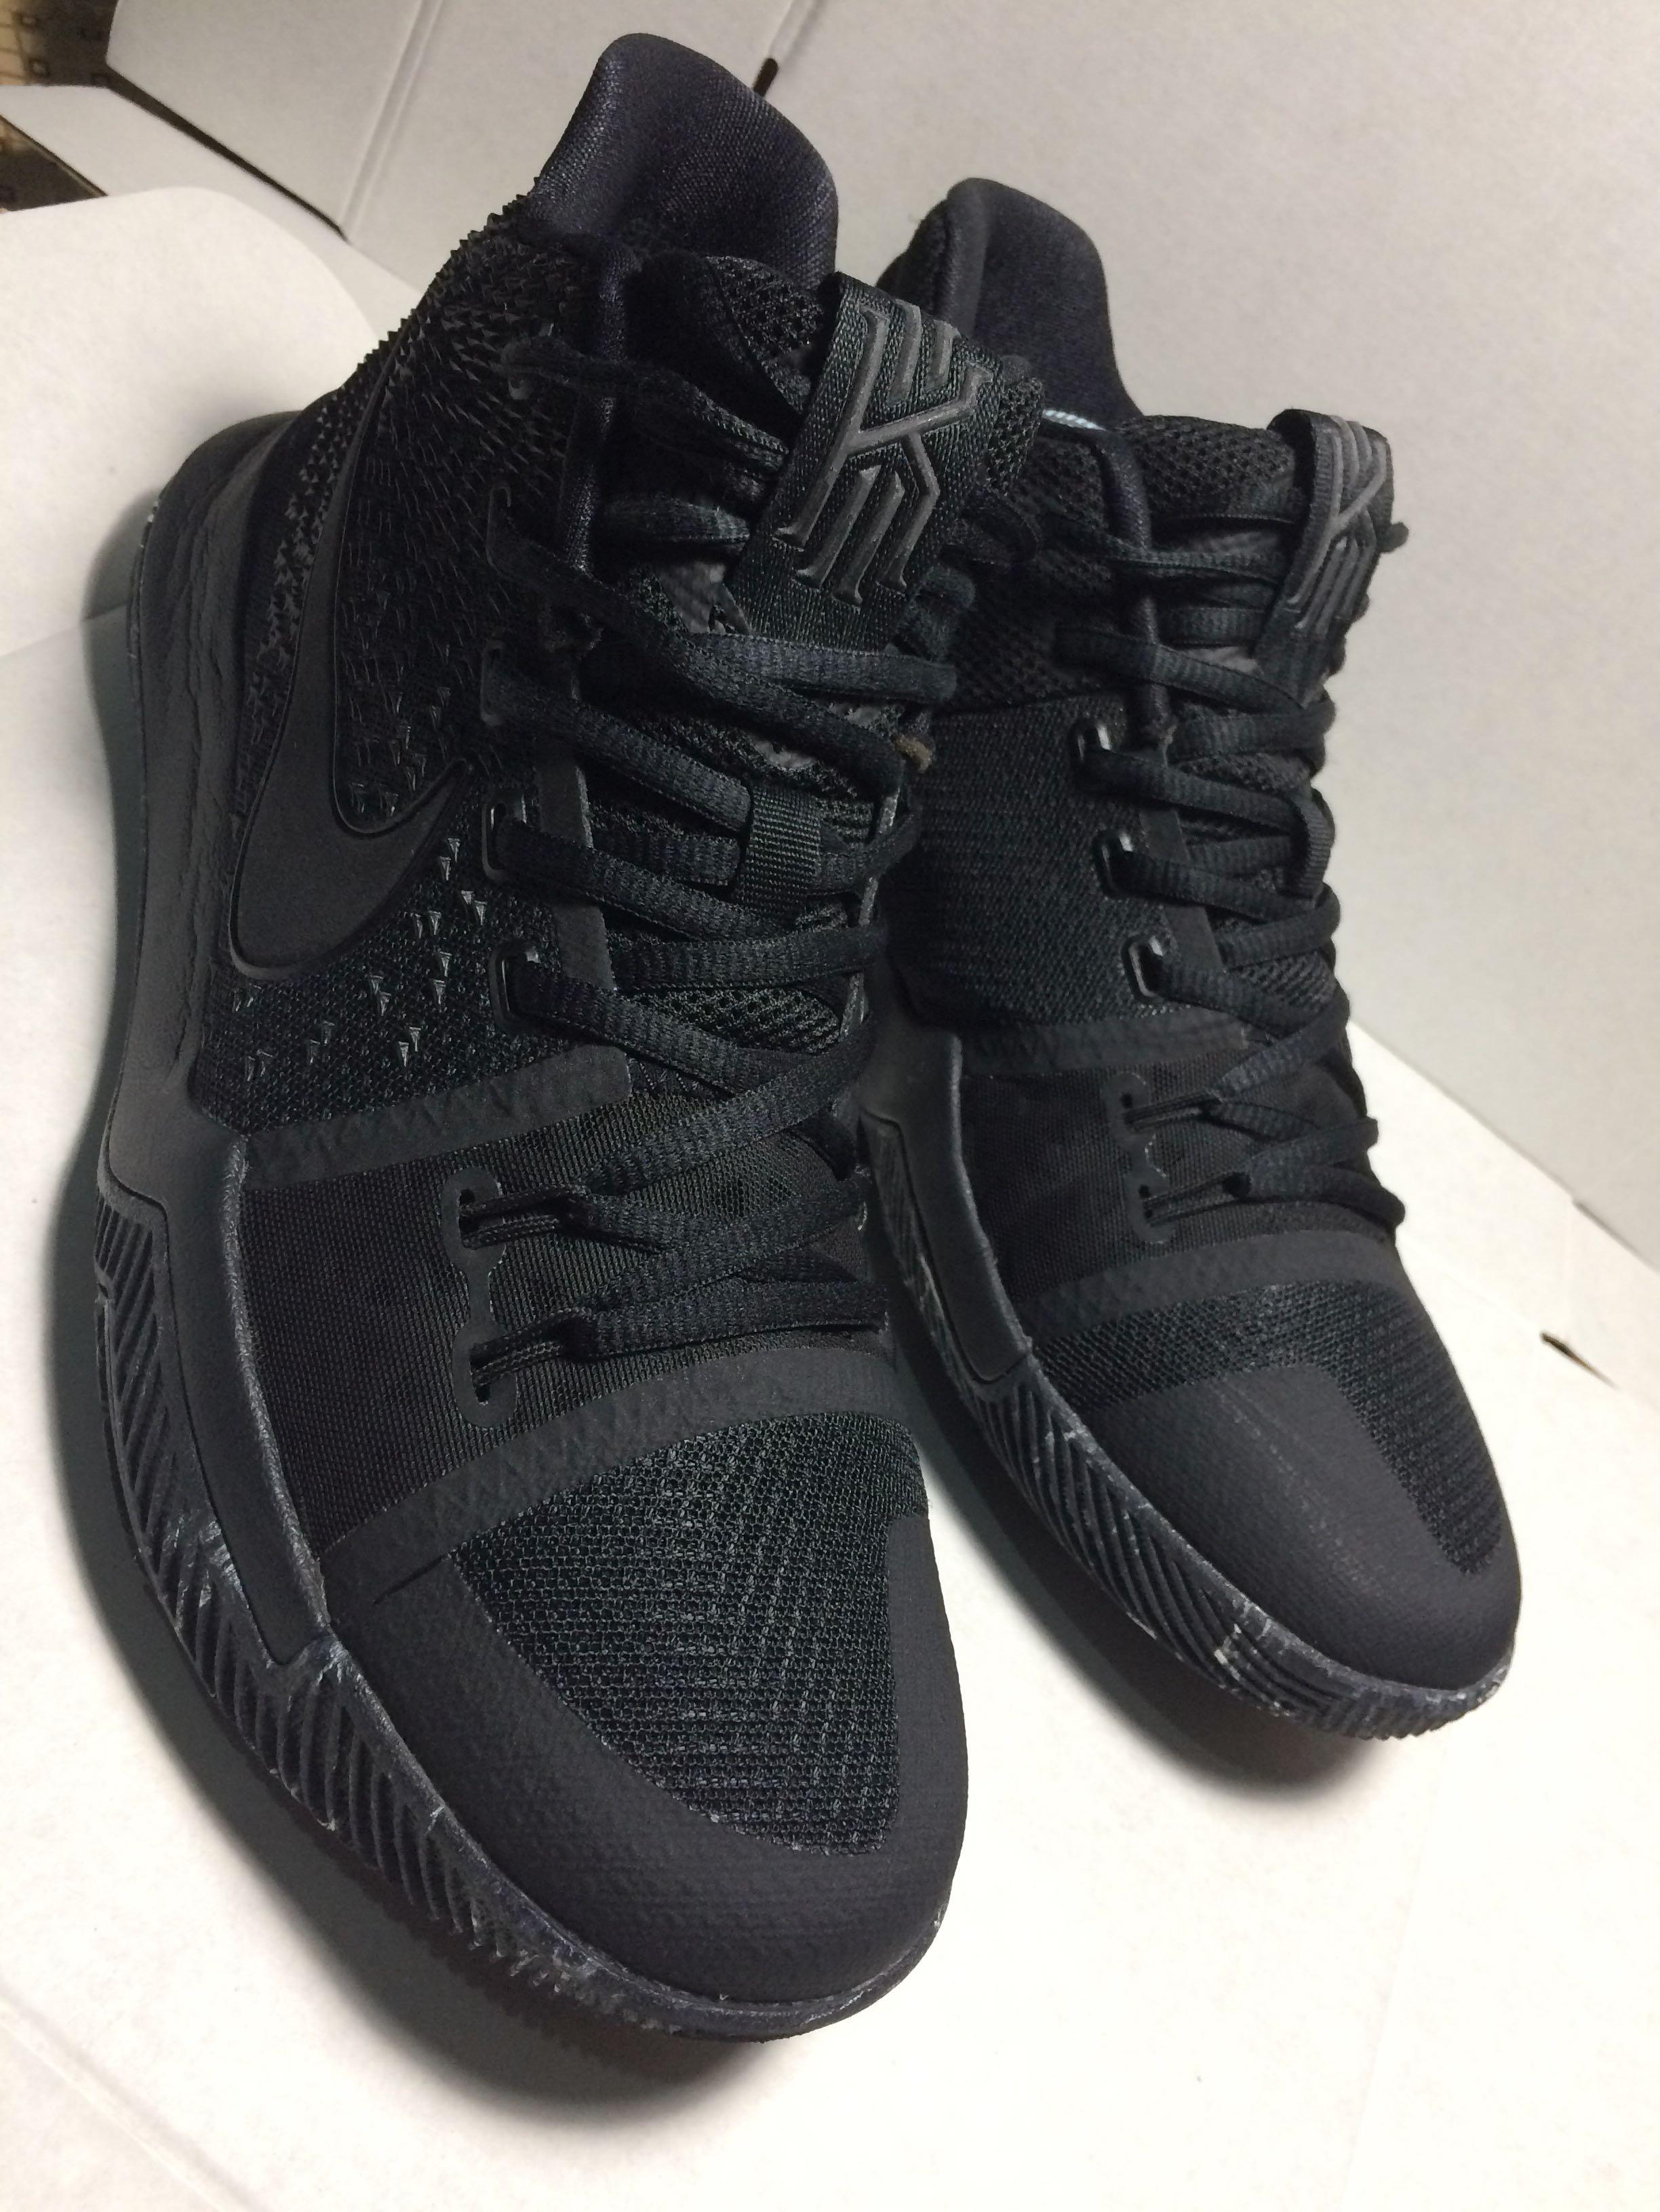 timeless design 3b362 f9bb5 Kyrie 3 Triple Black/Marble, Men's Fashion, Footwear ...